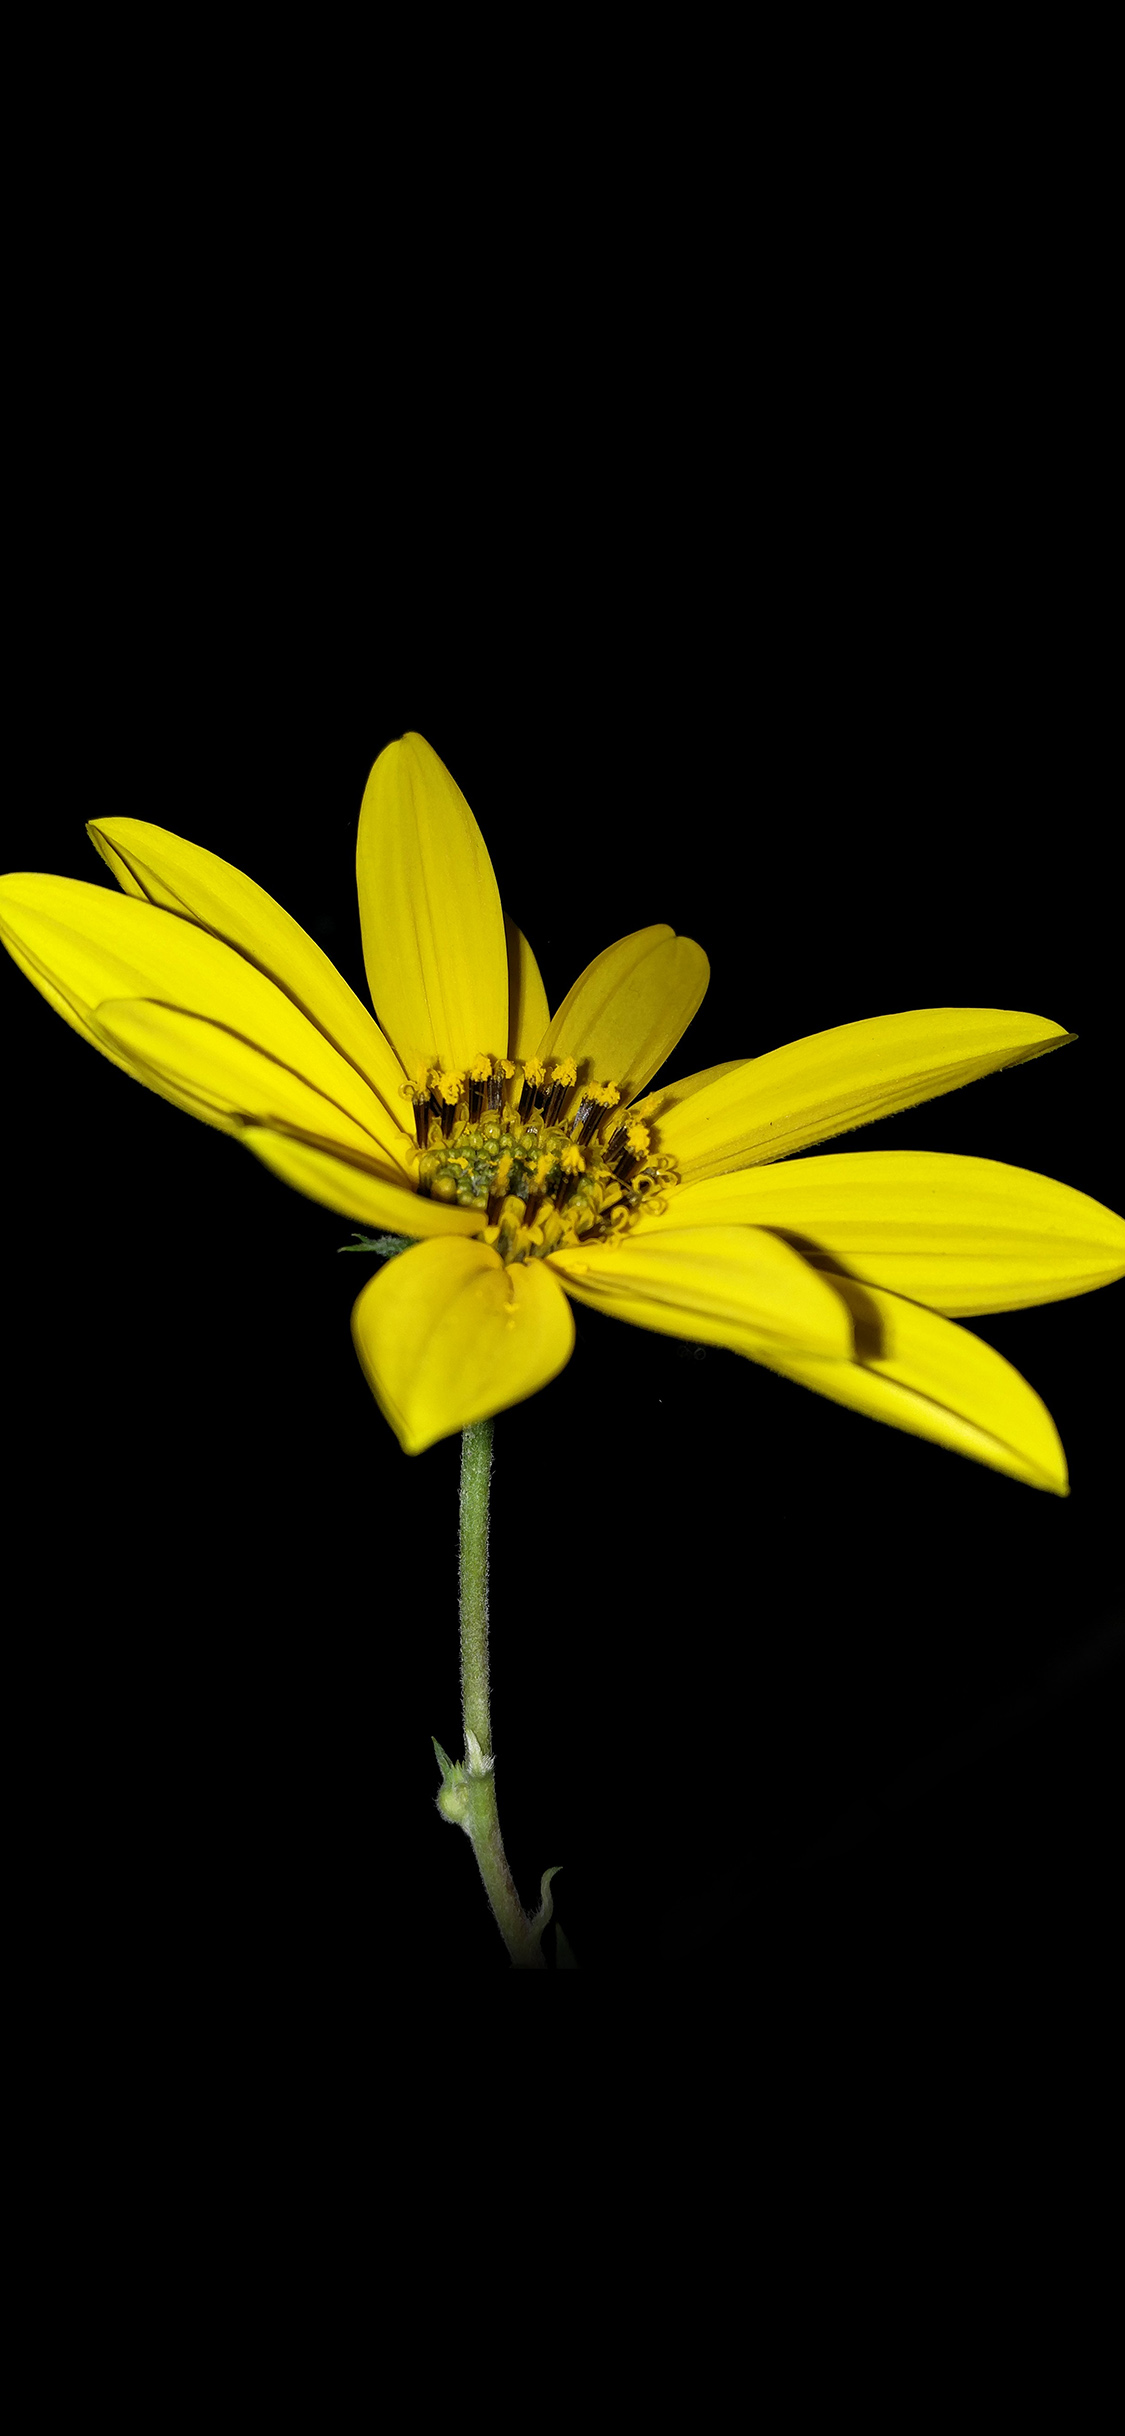 Papers Co Iphone Wallpaper An99 Flower Yellow Nature Art Dark Minimal Simple